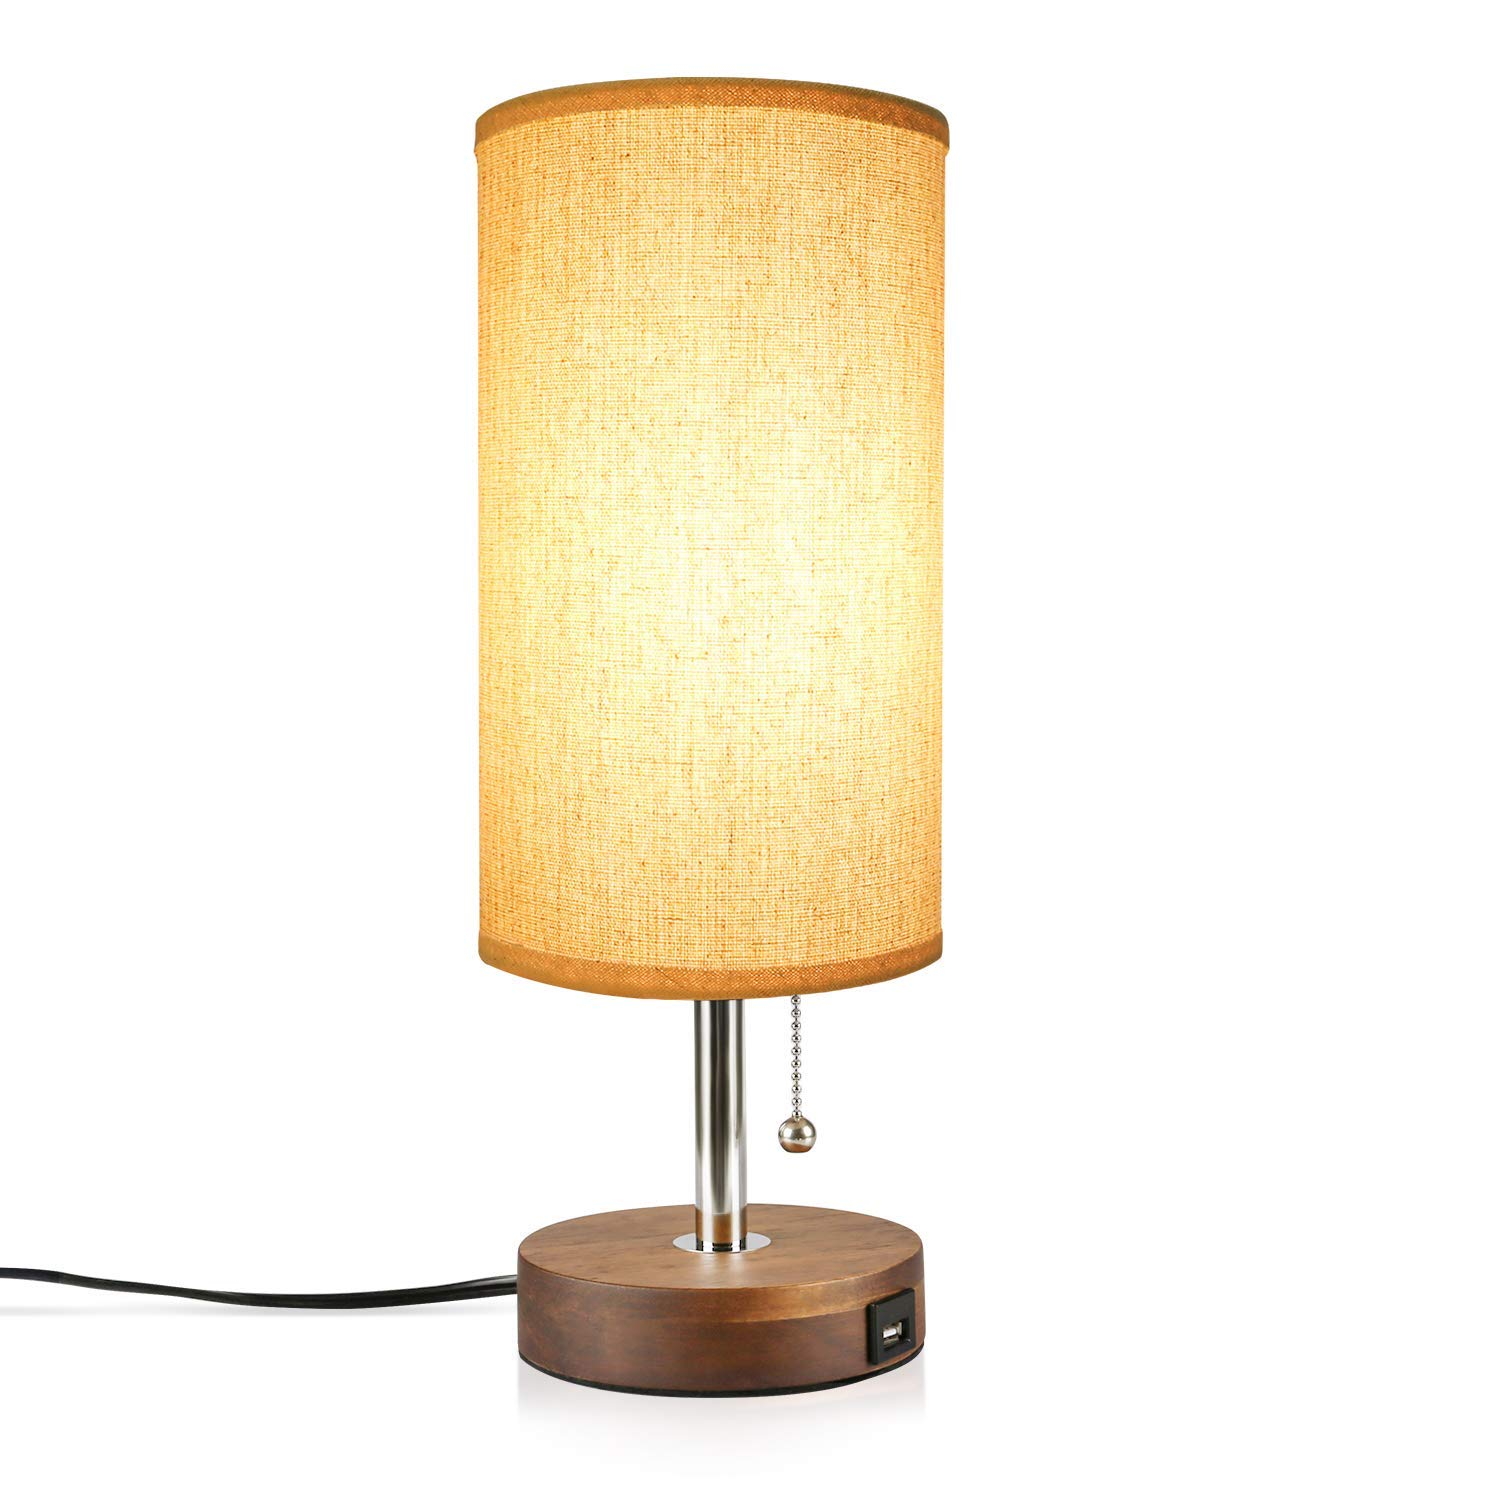 a8b5456556a Hong-in USB Table Lamp